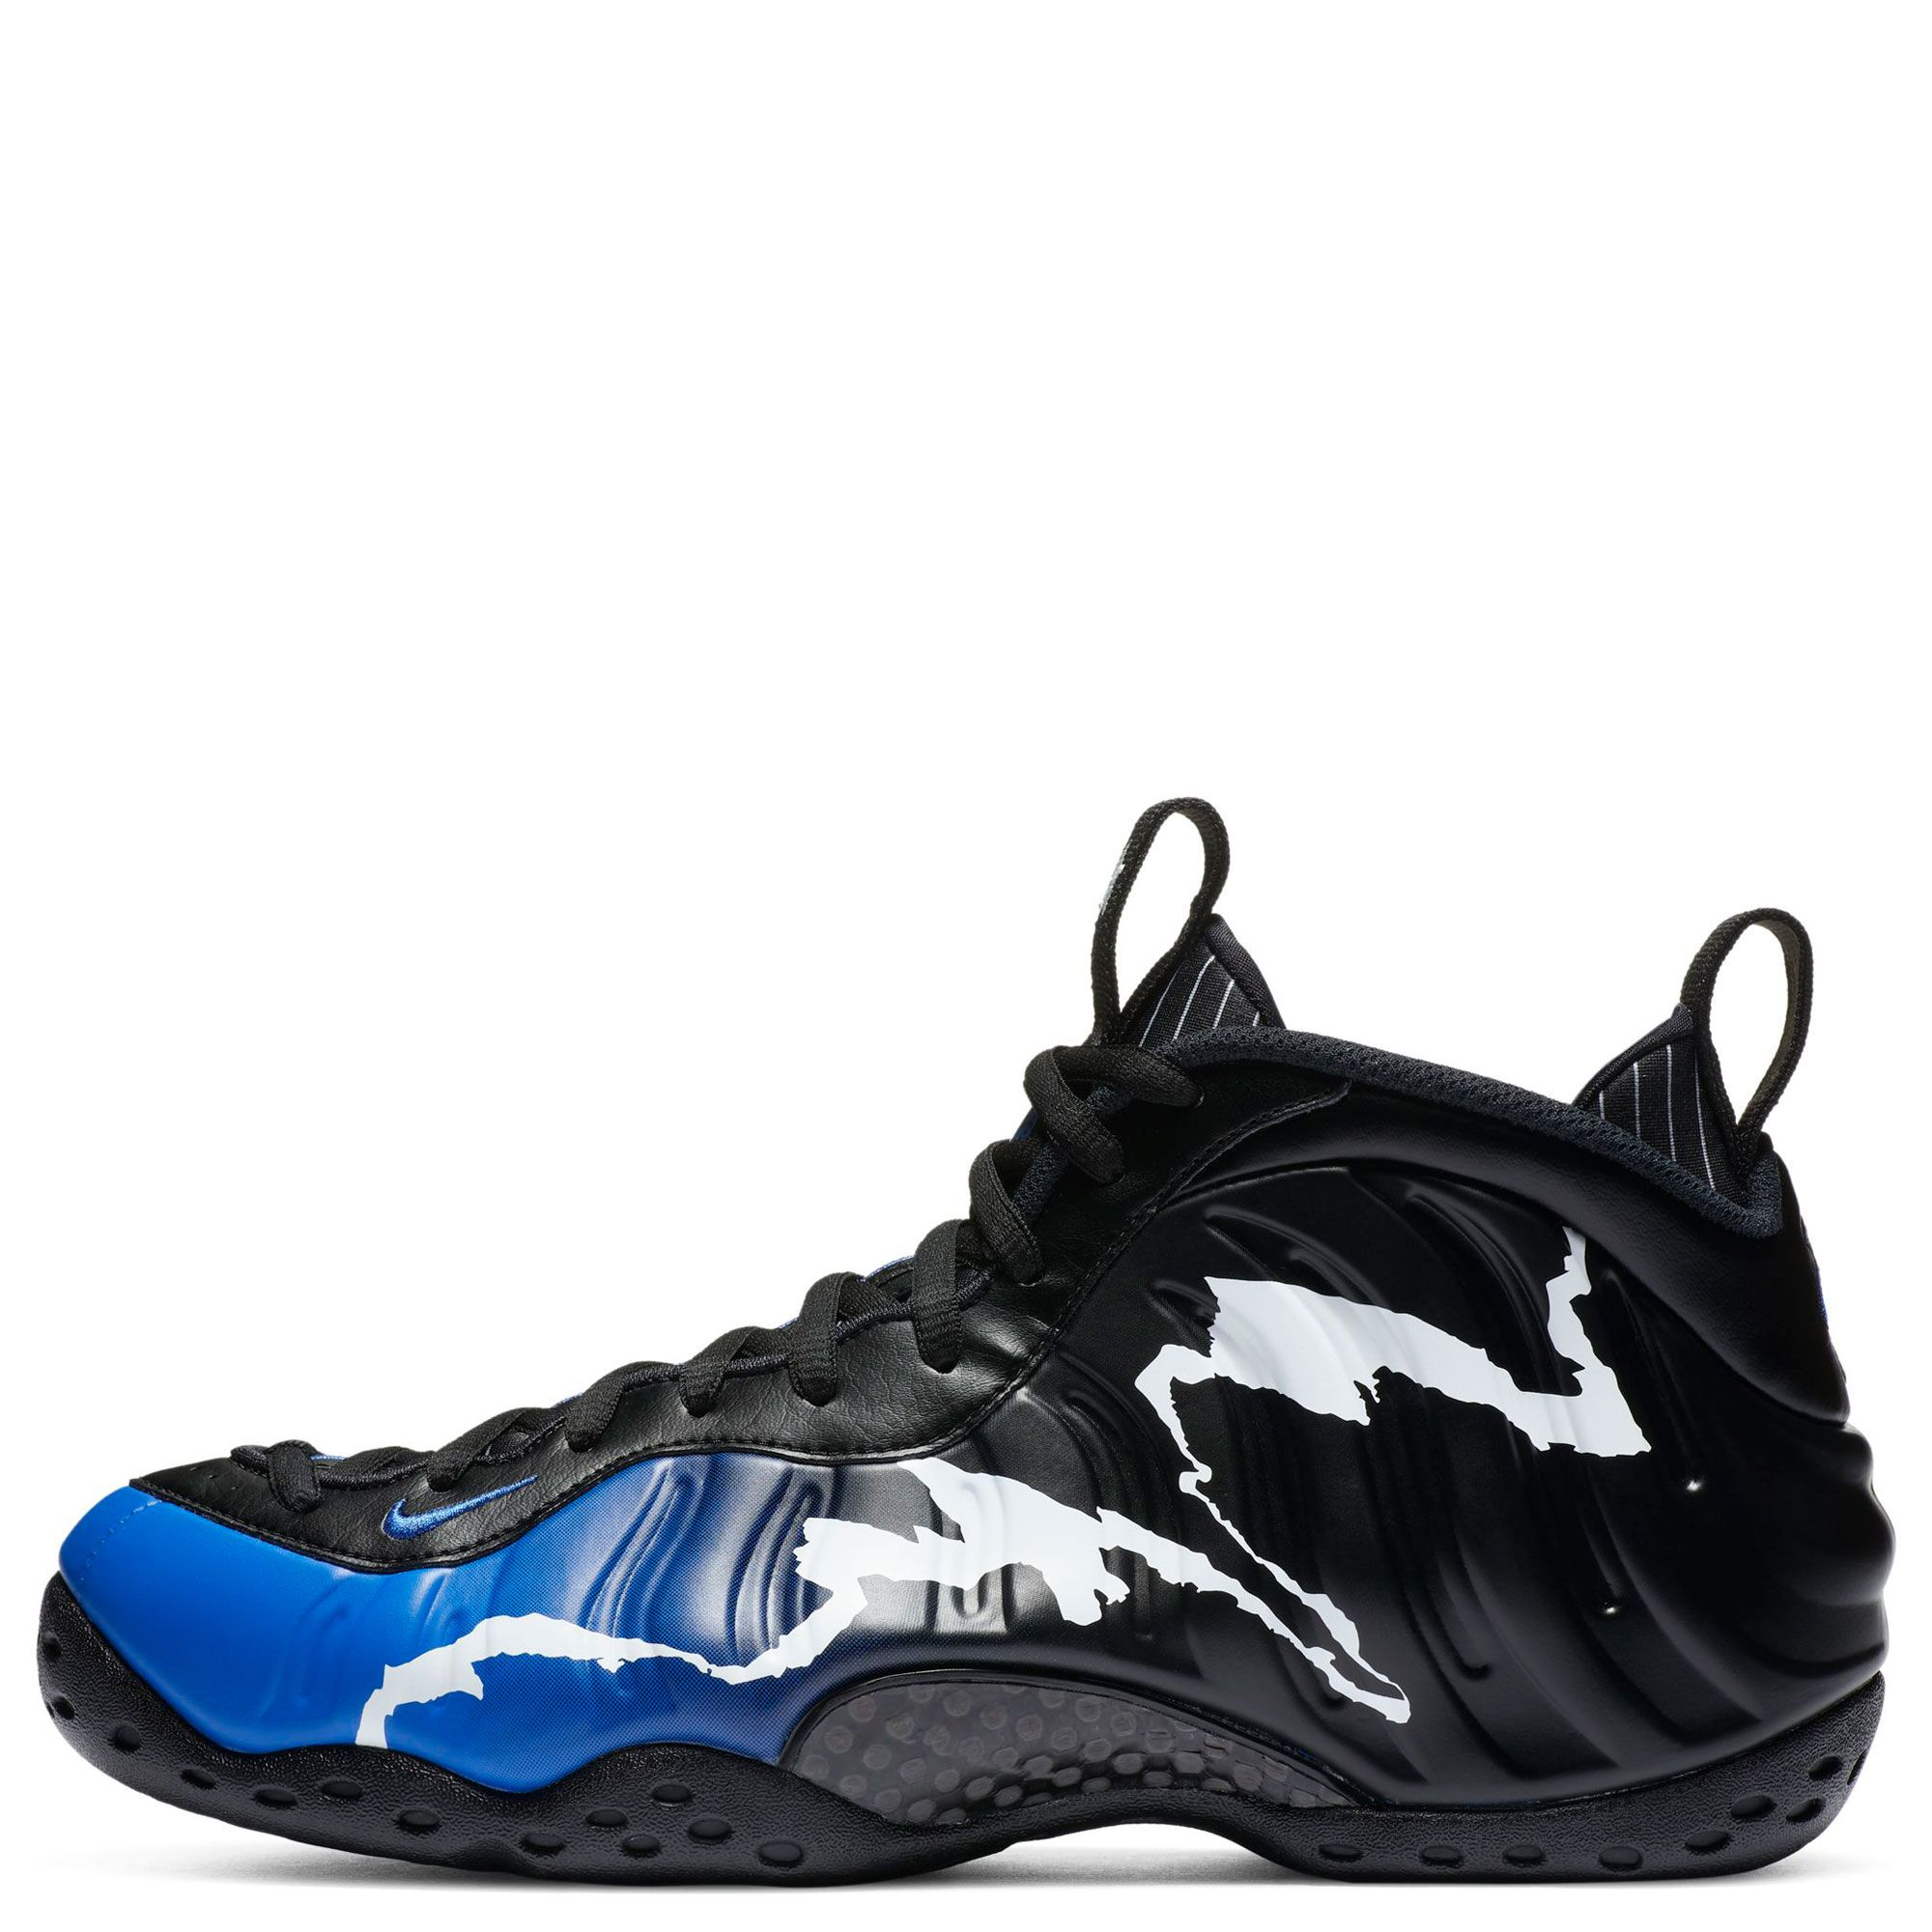 University Blue Foamposites For Cheap Nike Air Foamposite One ...